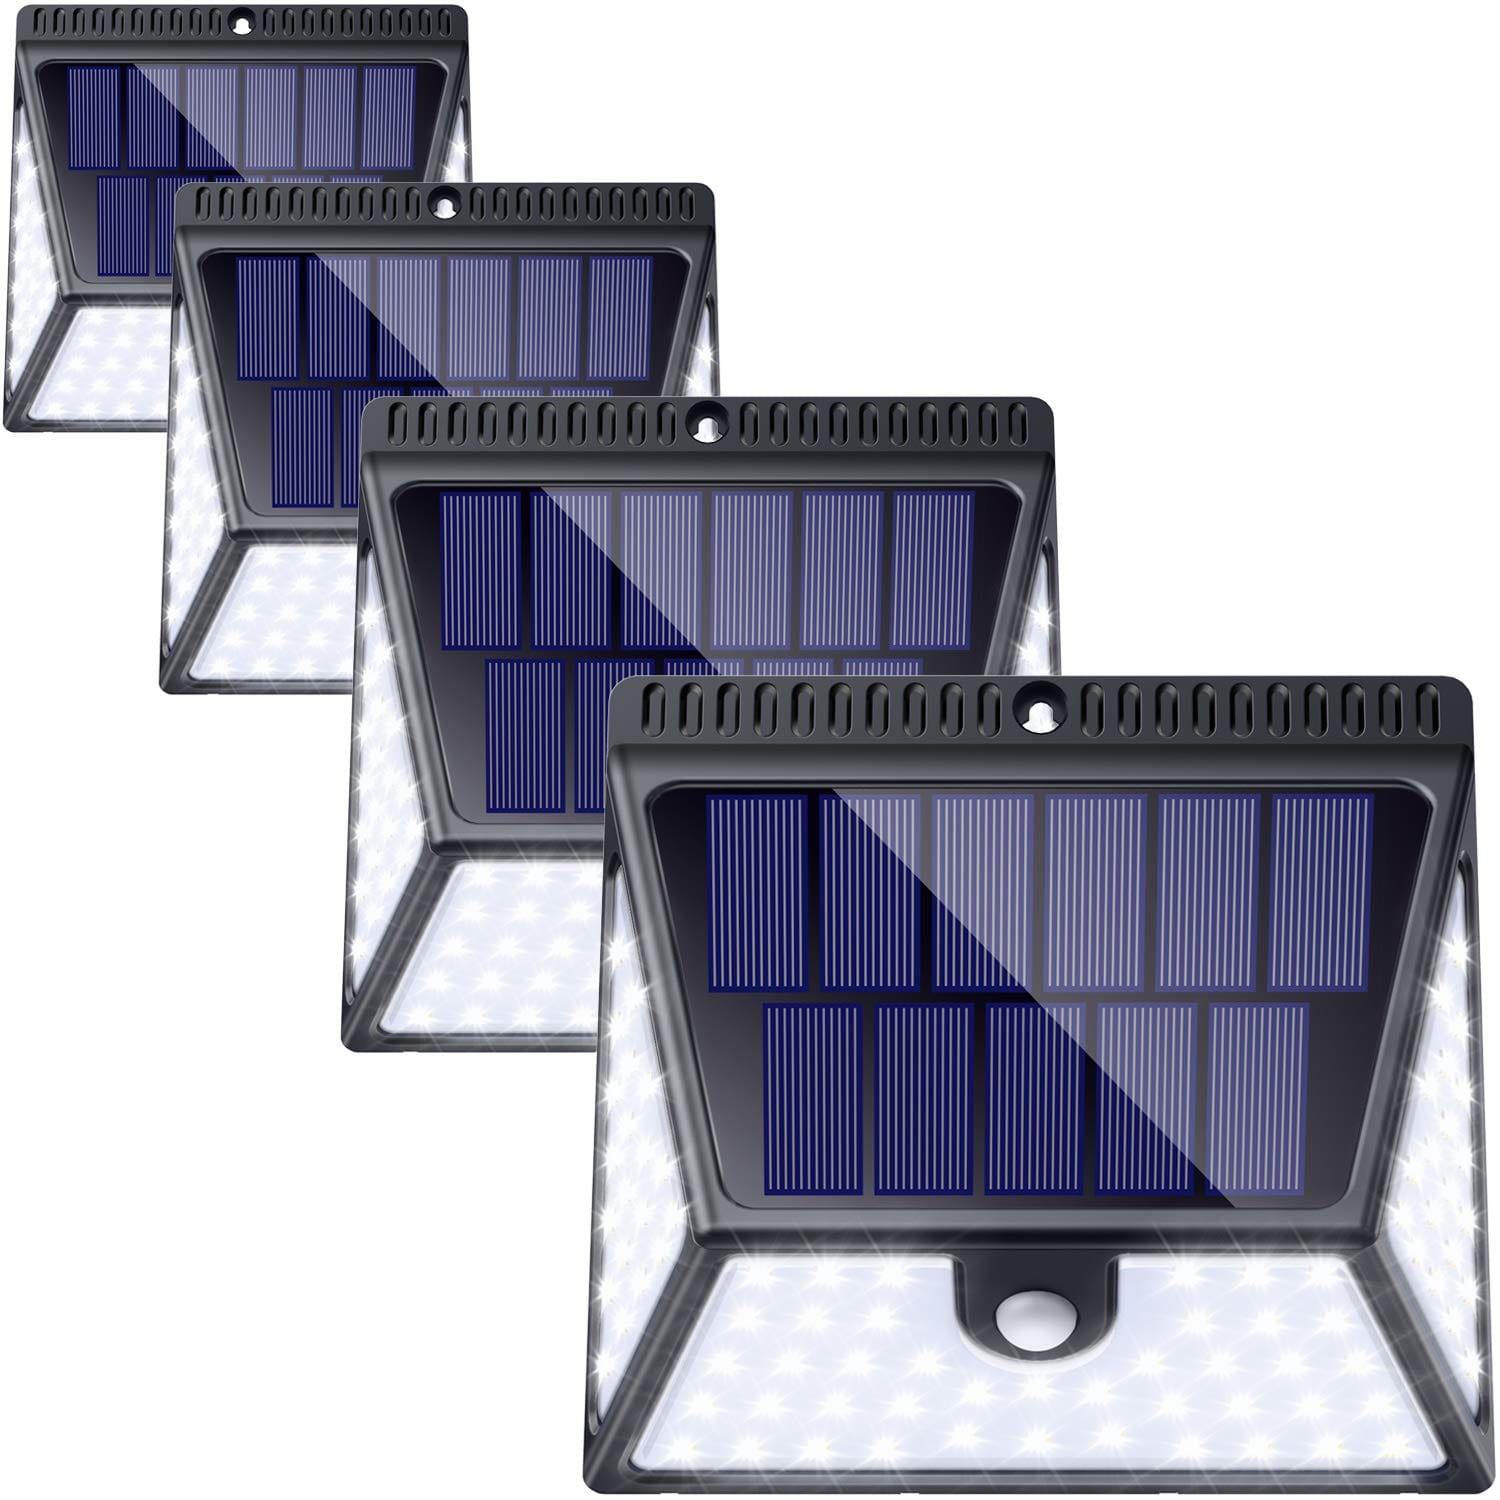 Save $30 off for Luscreal 82 LEDs Wireless Solar Lights 4 Pack - $29.99 @Amazon